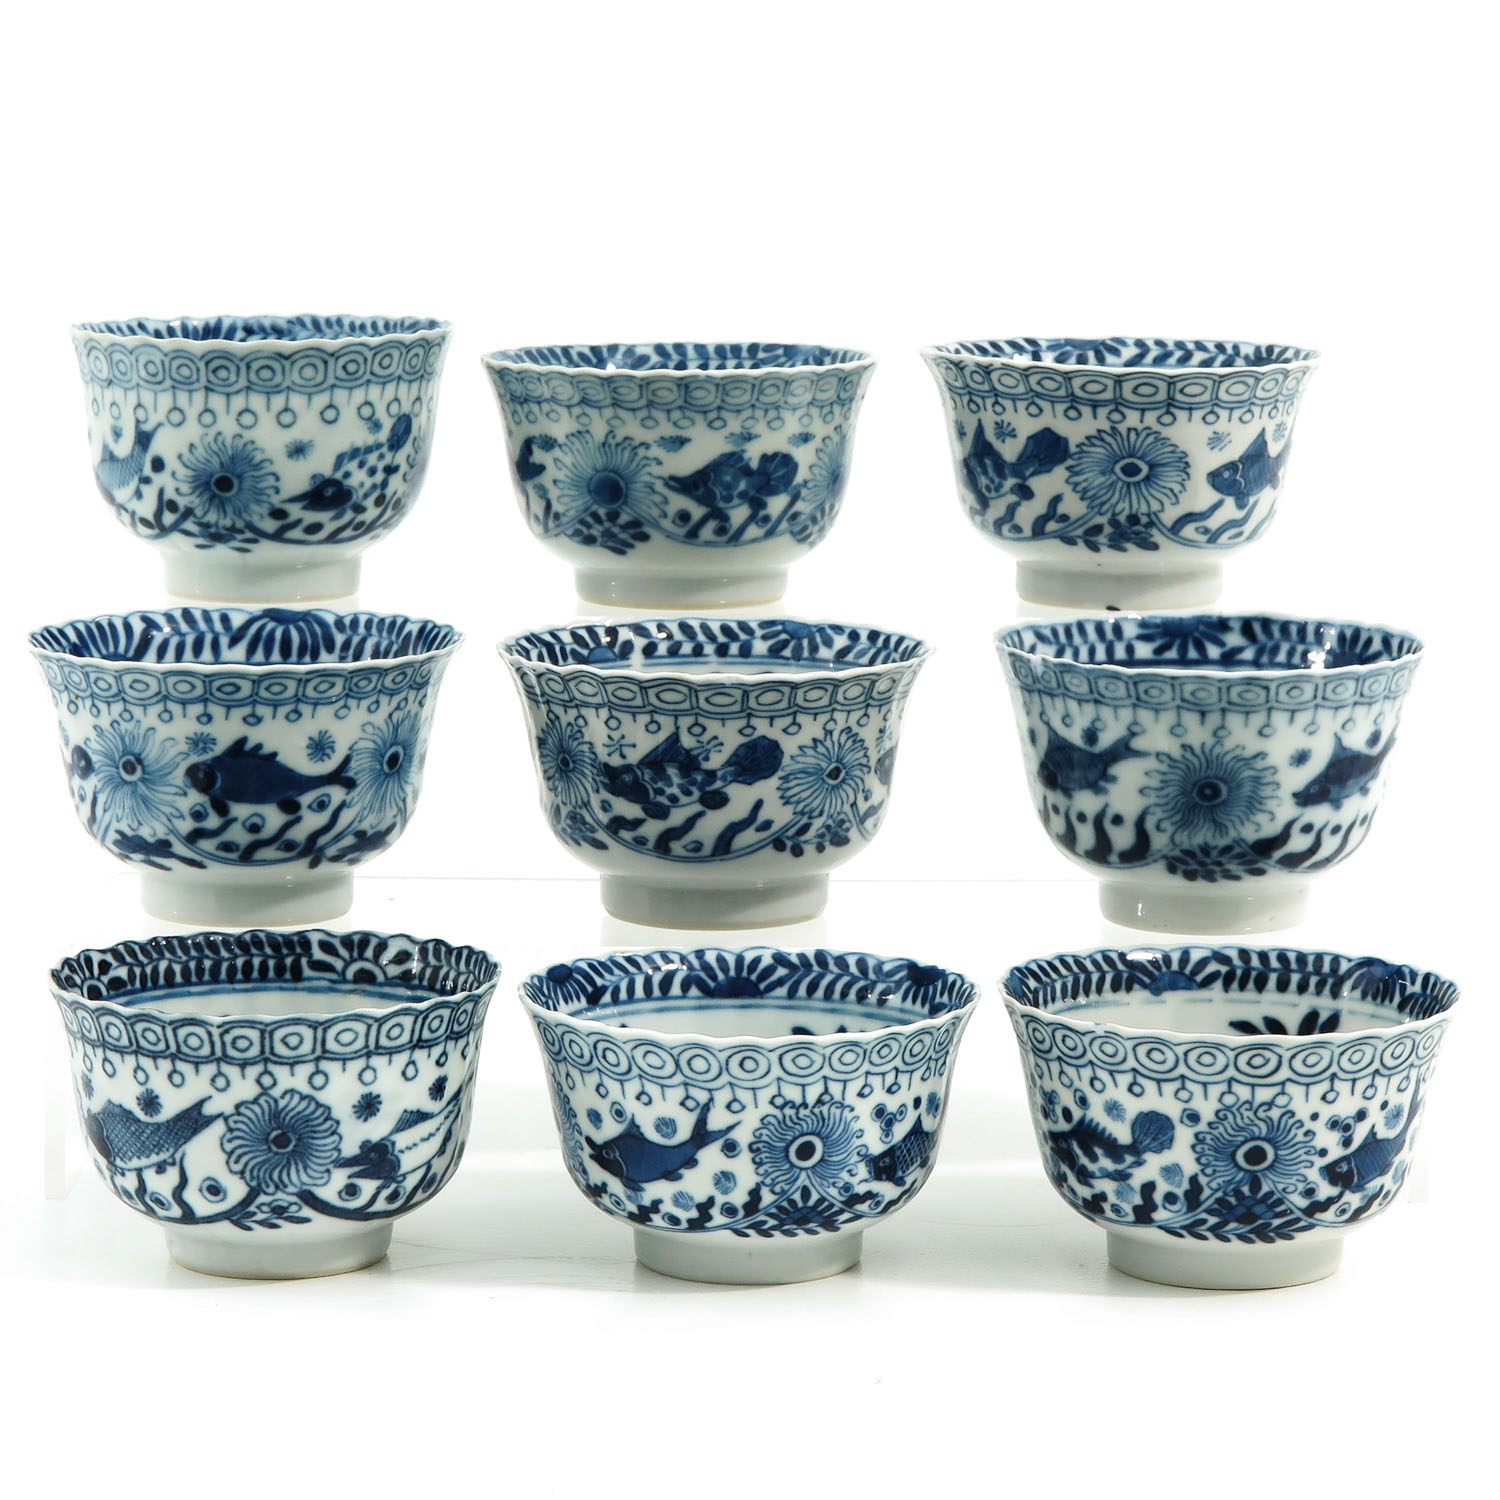 A Collection of Cups and Saucers - Image 4 of 10